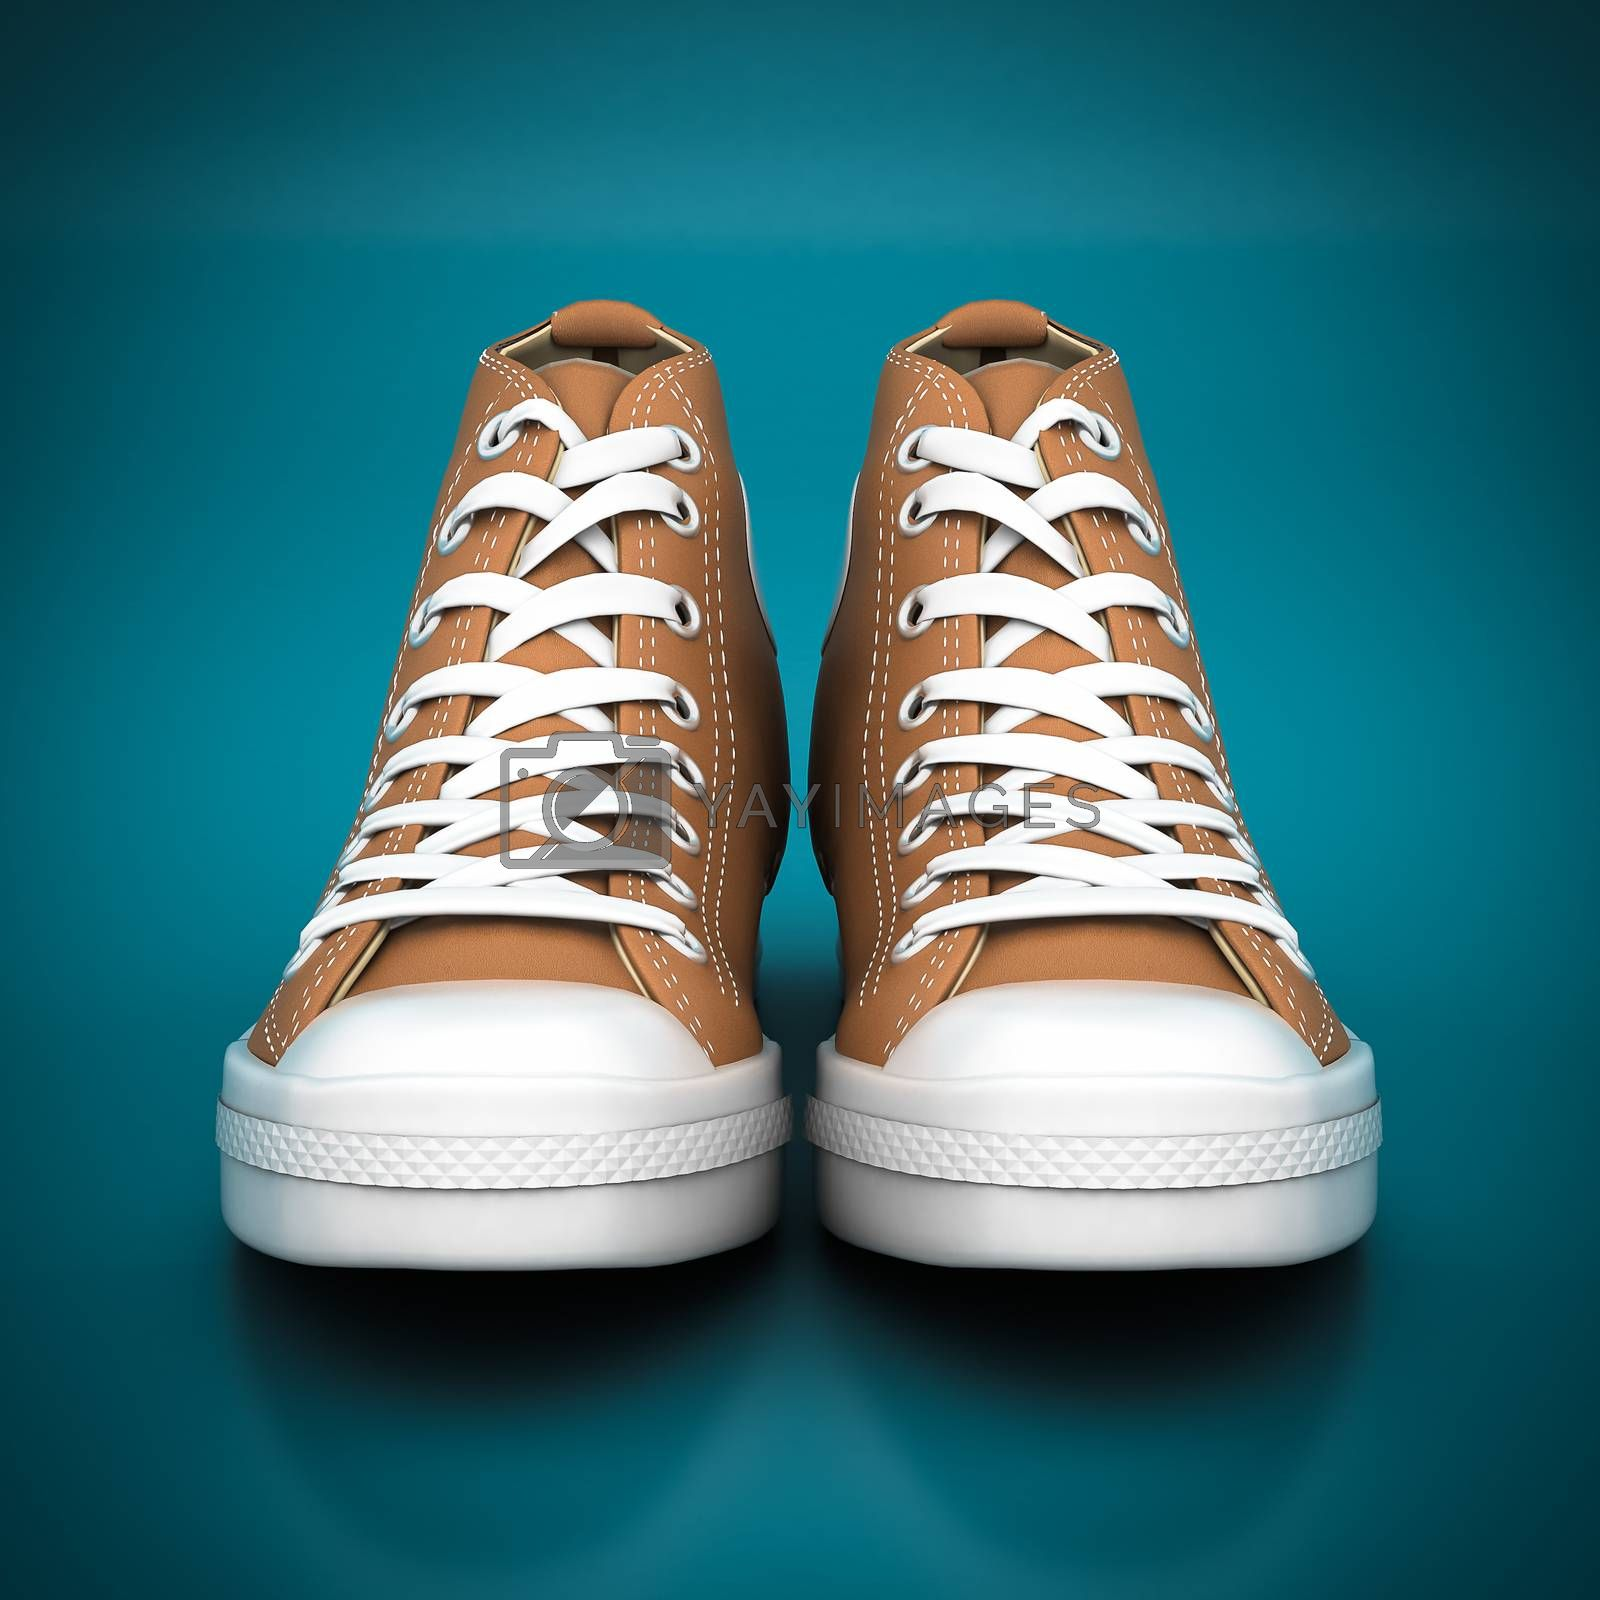 Fashion leather shoes on a blue background